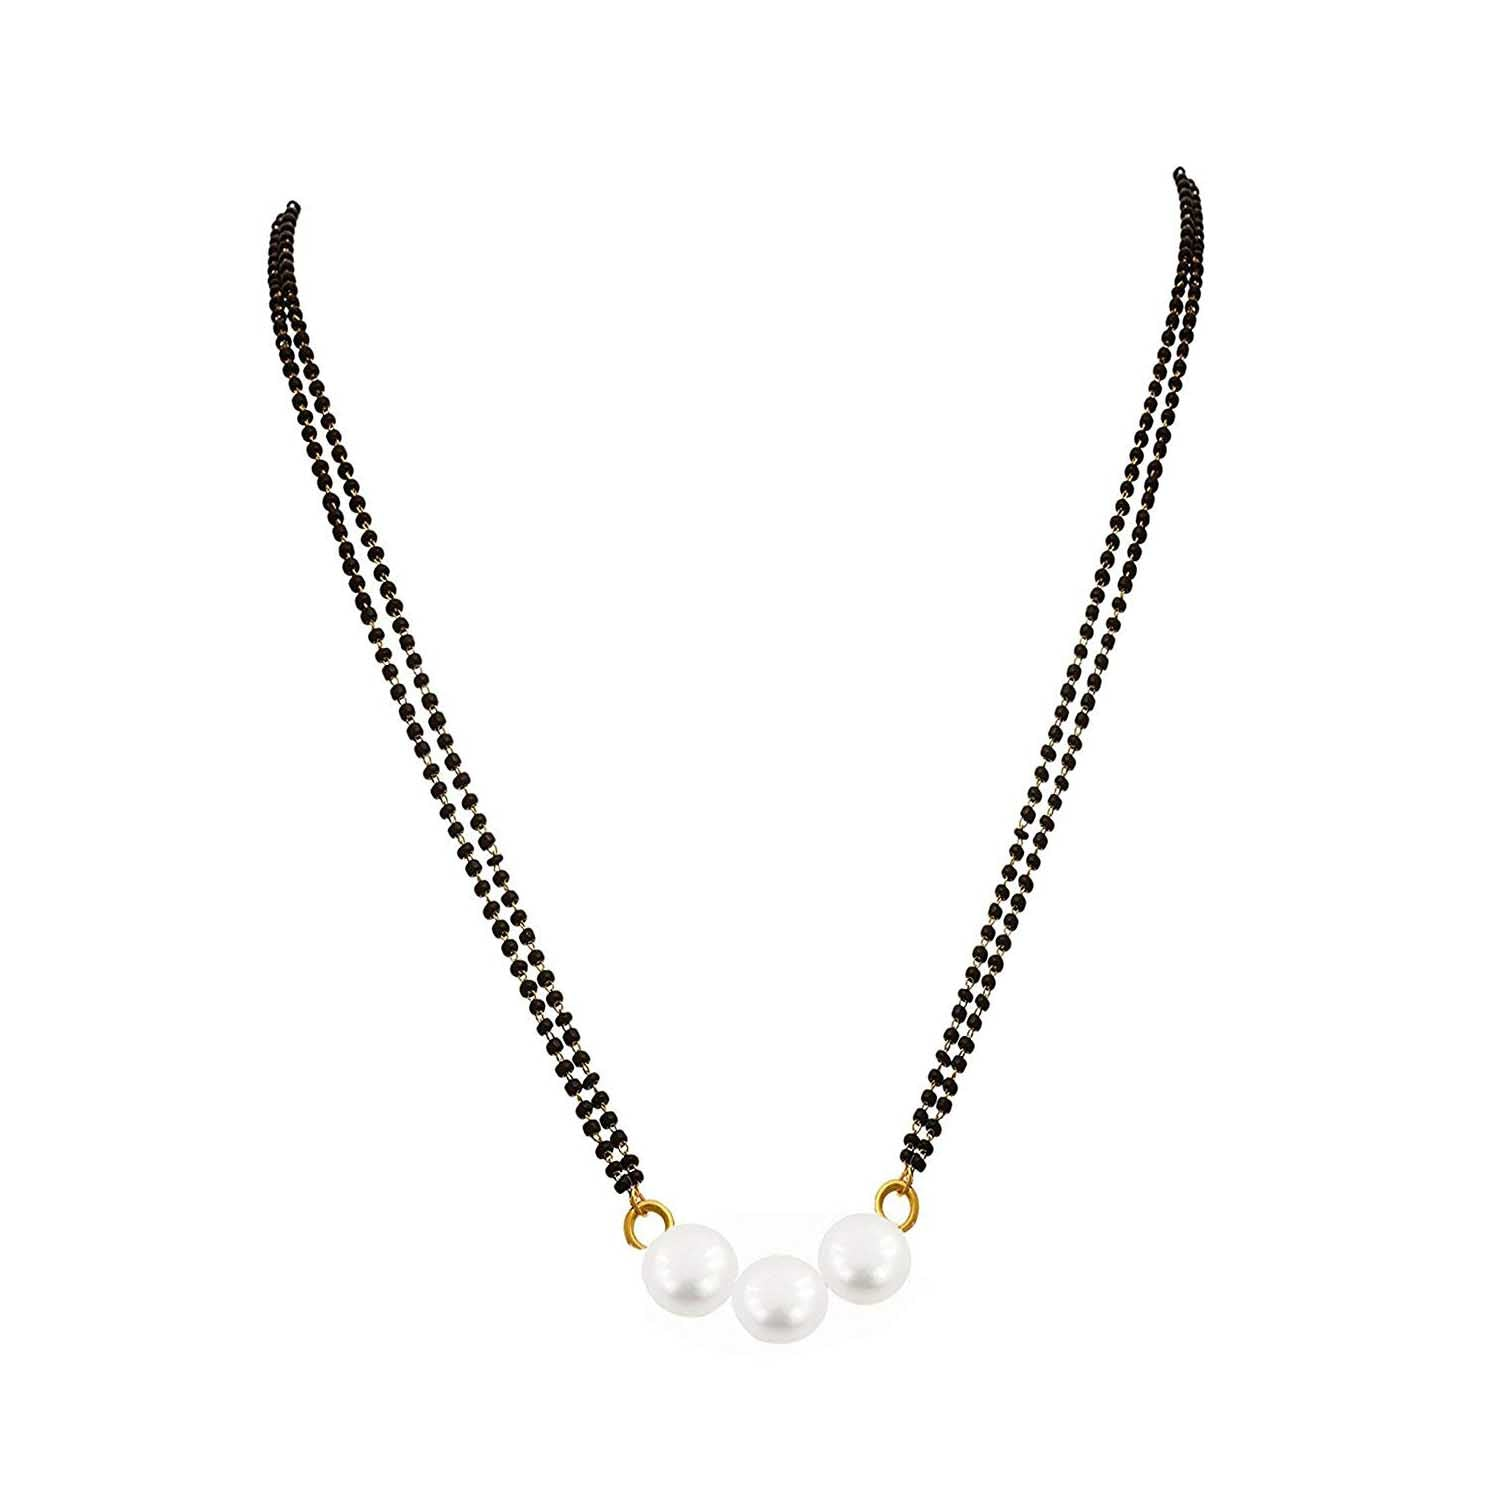 JFL Gold Plated Pearl Designer Mangalsutra with Black Bead Chain for Women (24-inch)